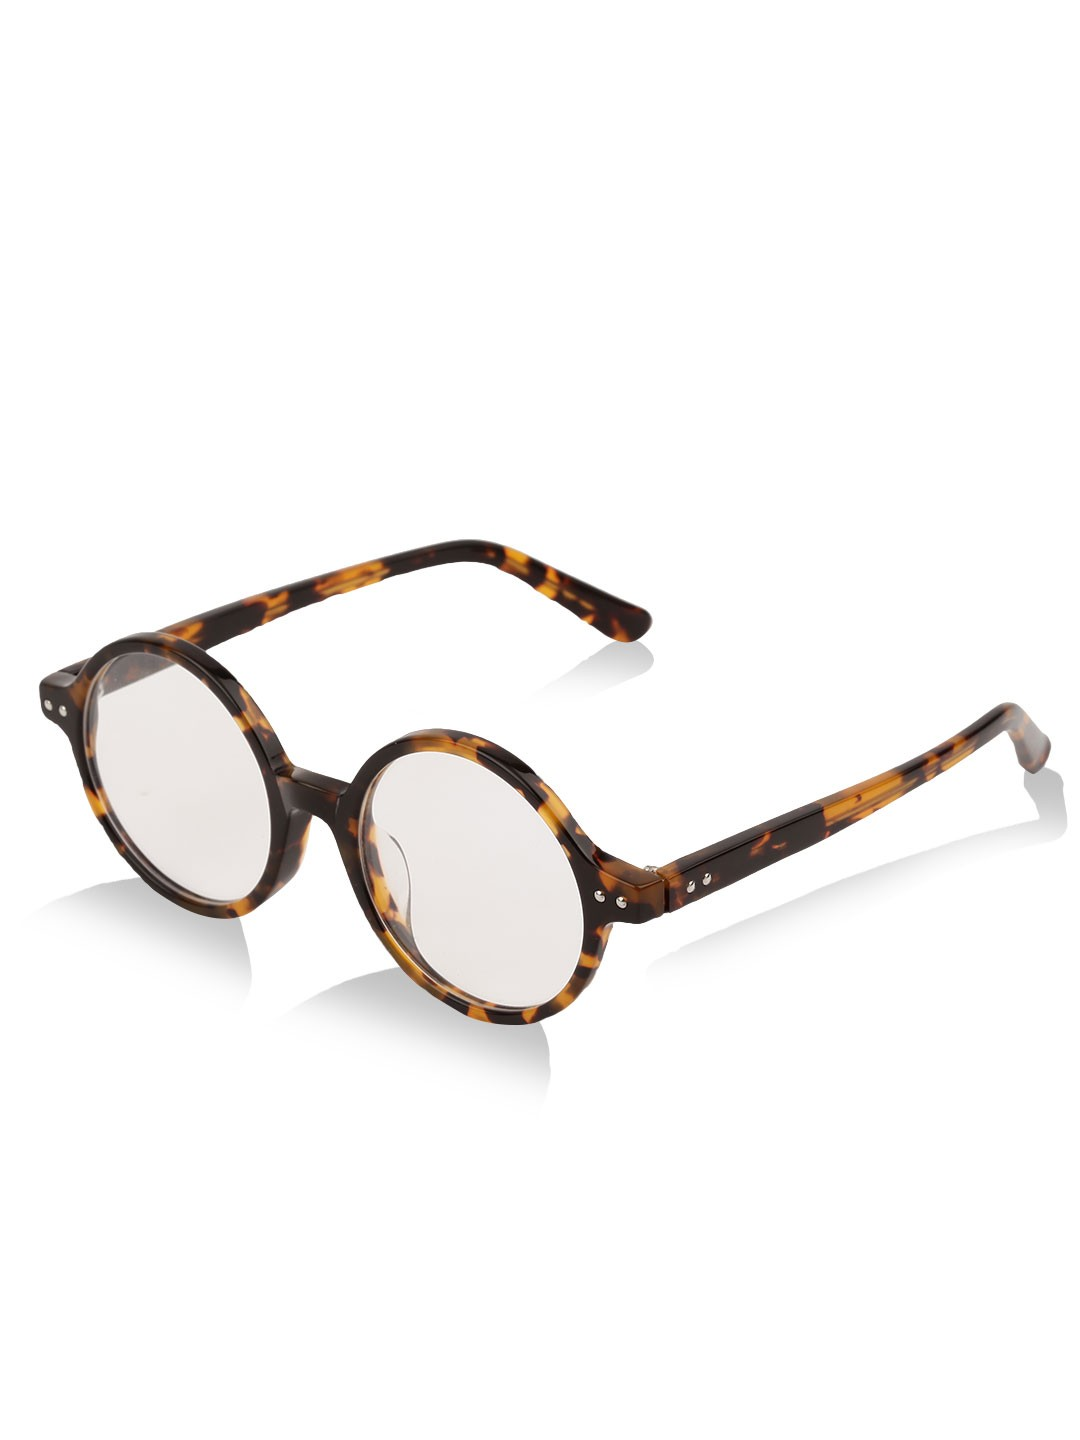 Buy Voi Jeans Tortoise Shell Clear Lens Round Glasses For